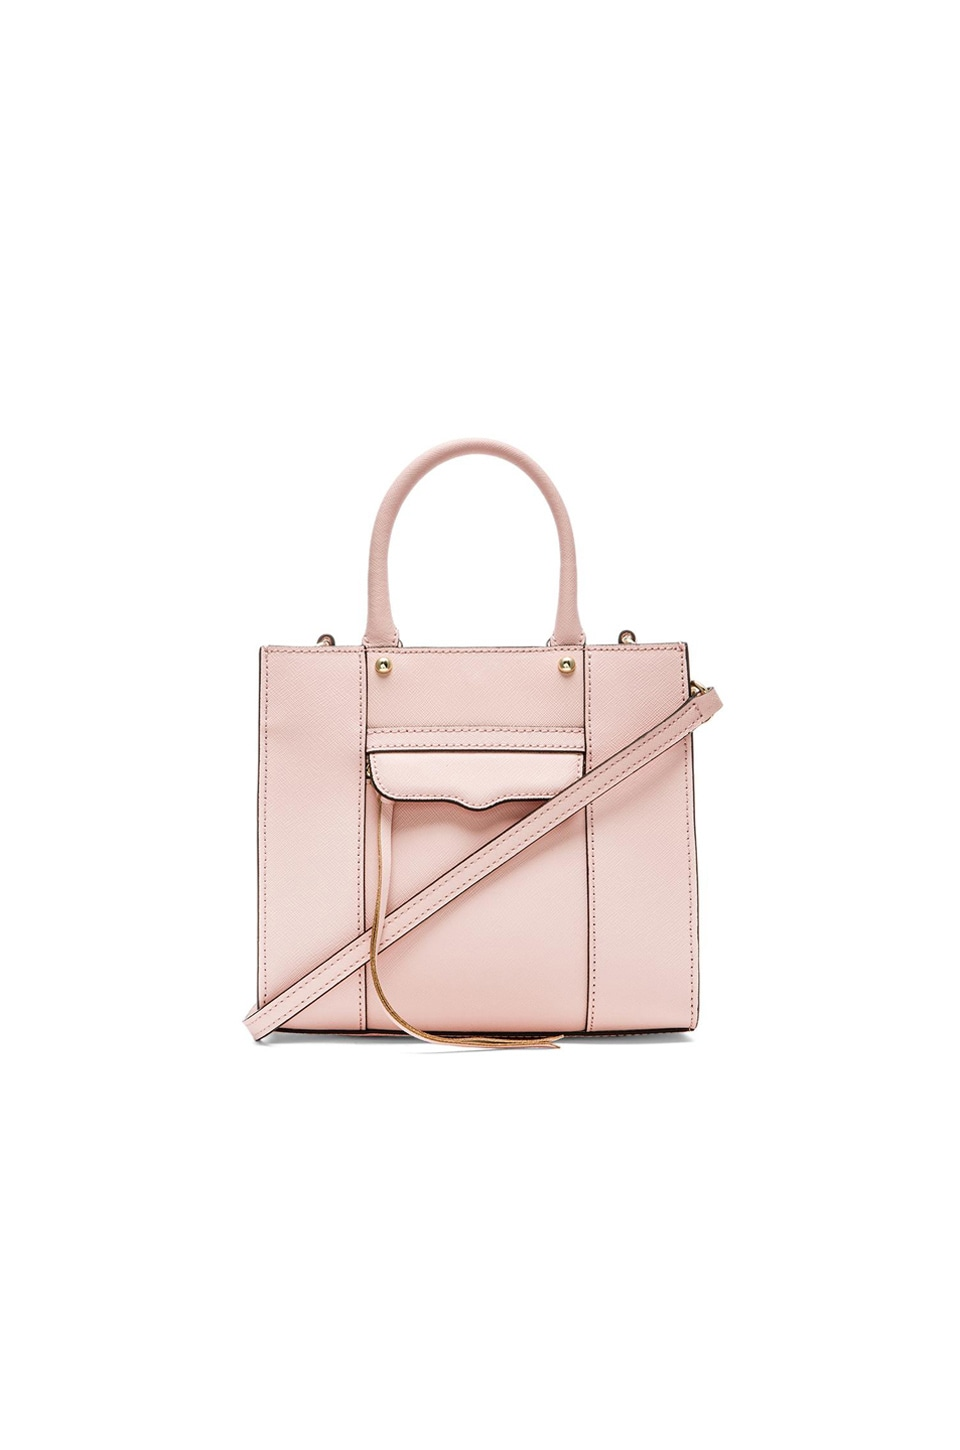 Rebecca Minkoff MAB Tote Mini in Quartz